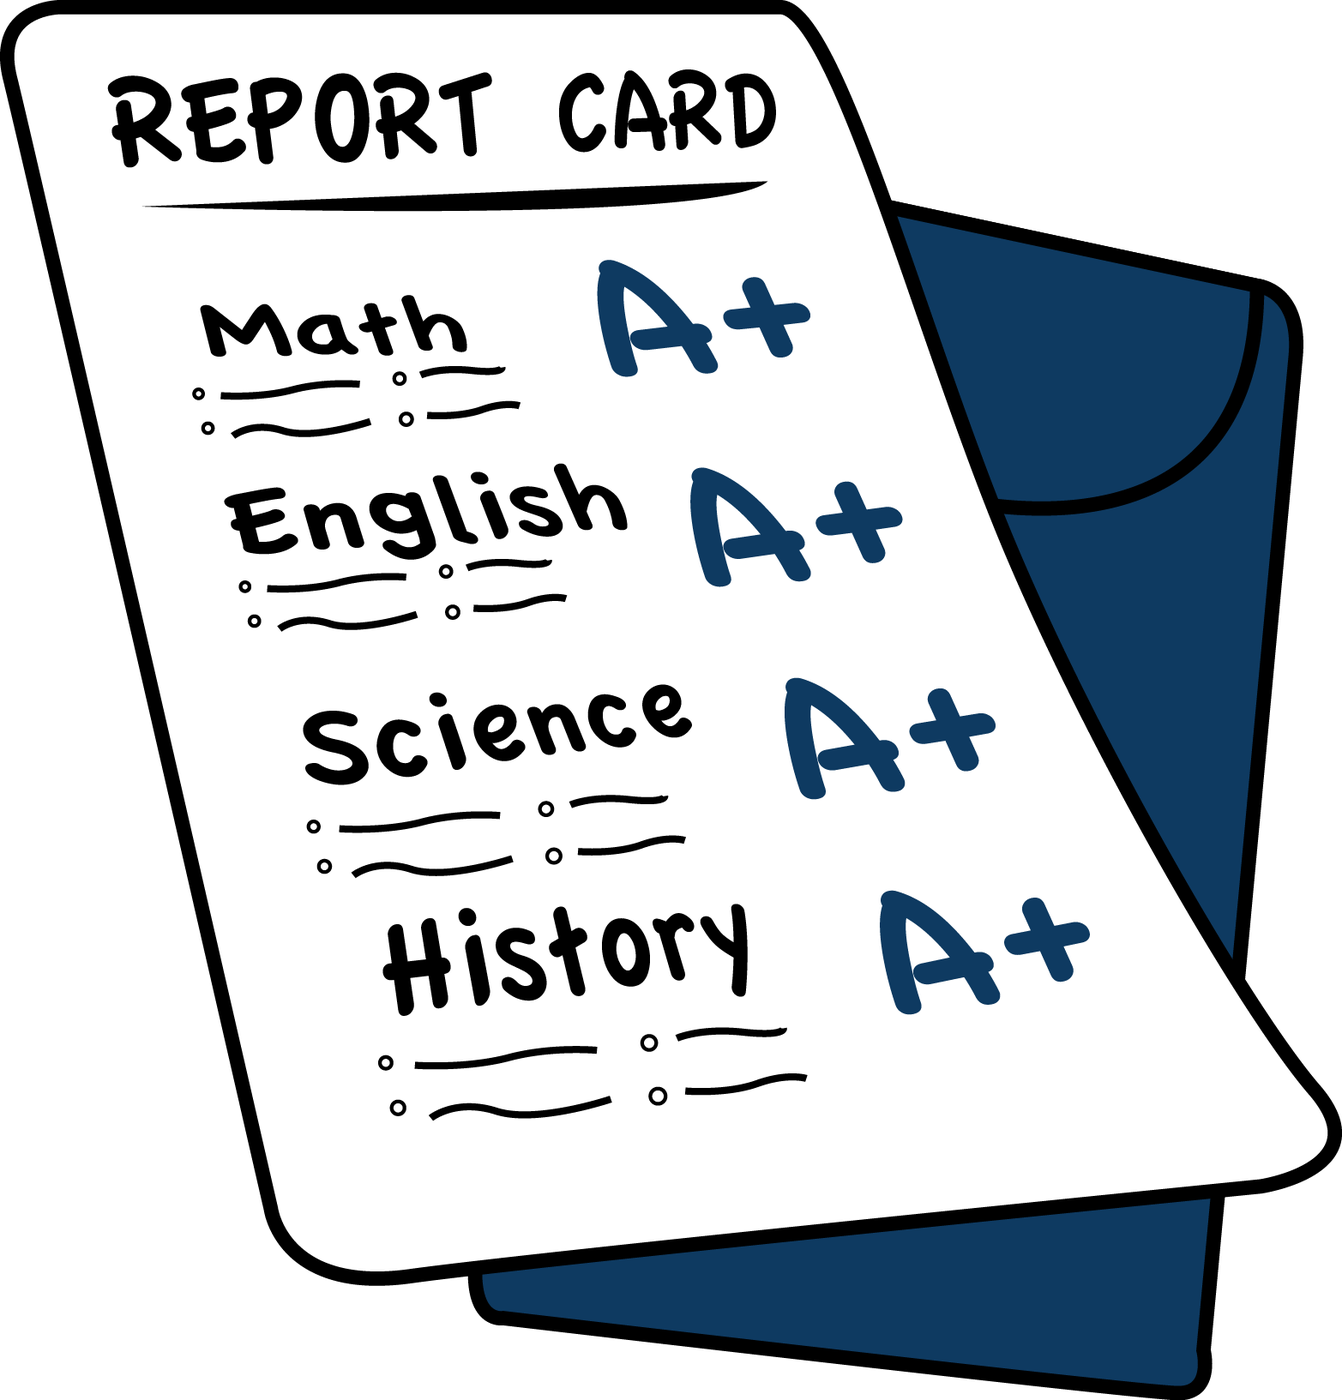 Proud clipart report card. Gator bites smore newsletters